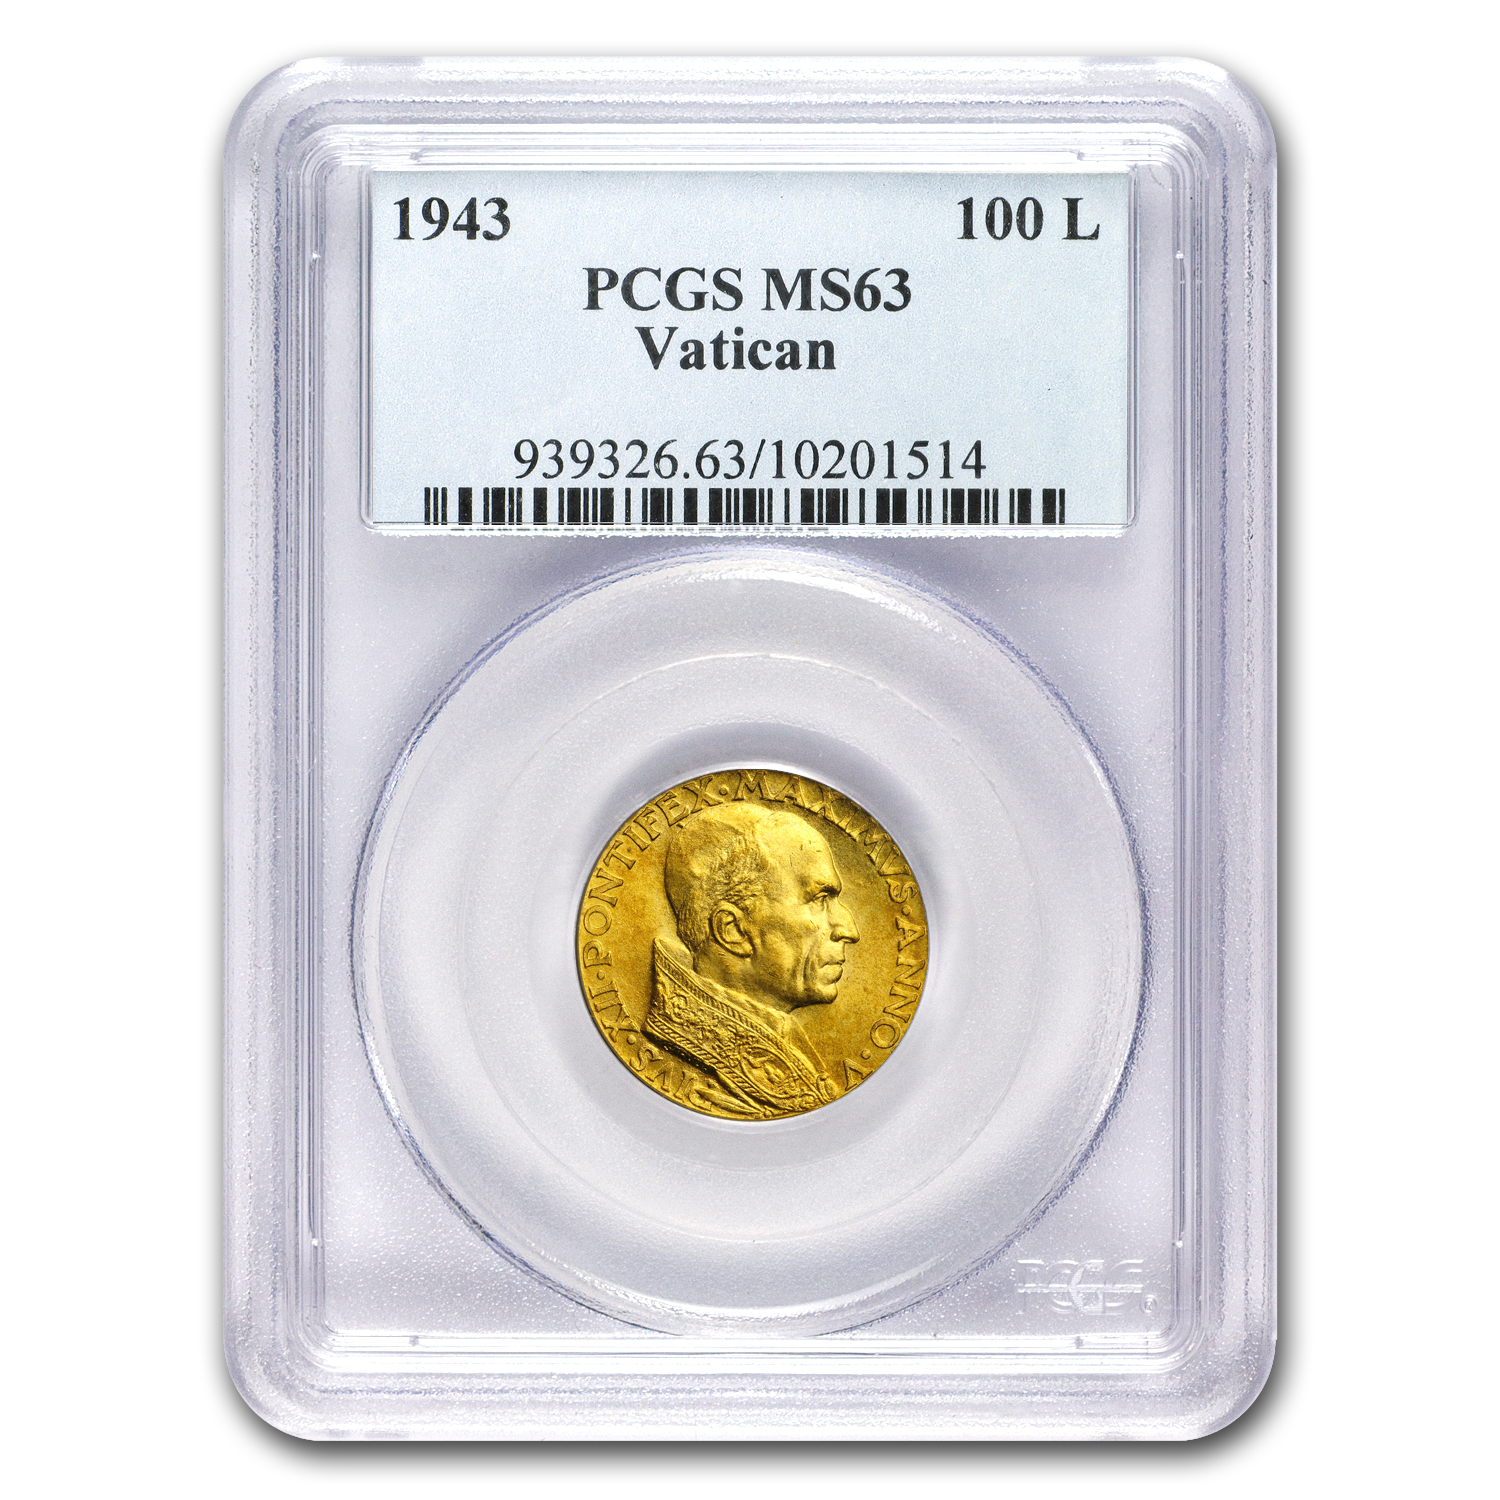 1943 Vatican City Gold 100 Lire Pope Pius XII MS-63 PCGS